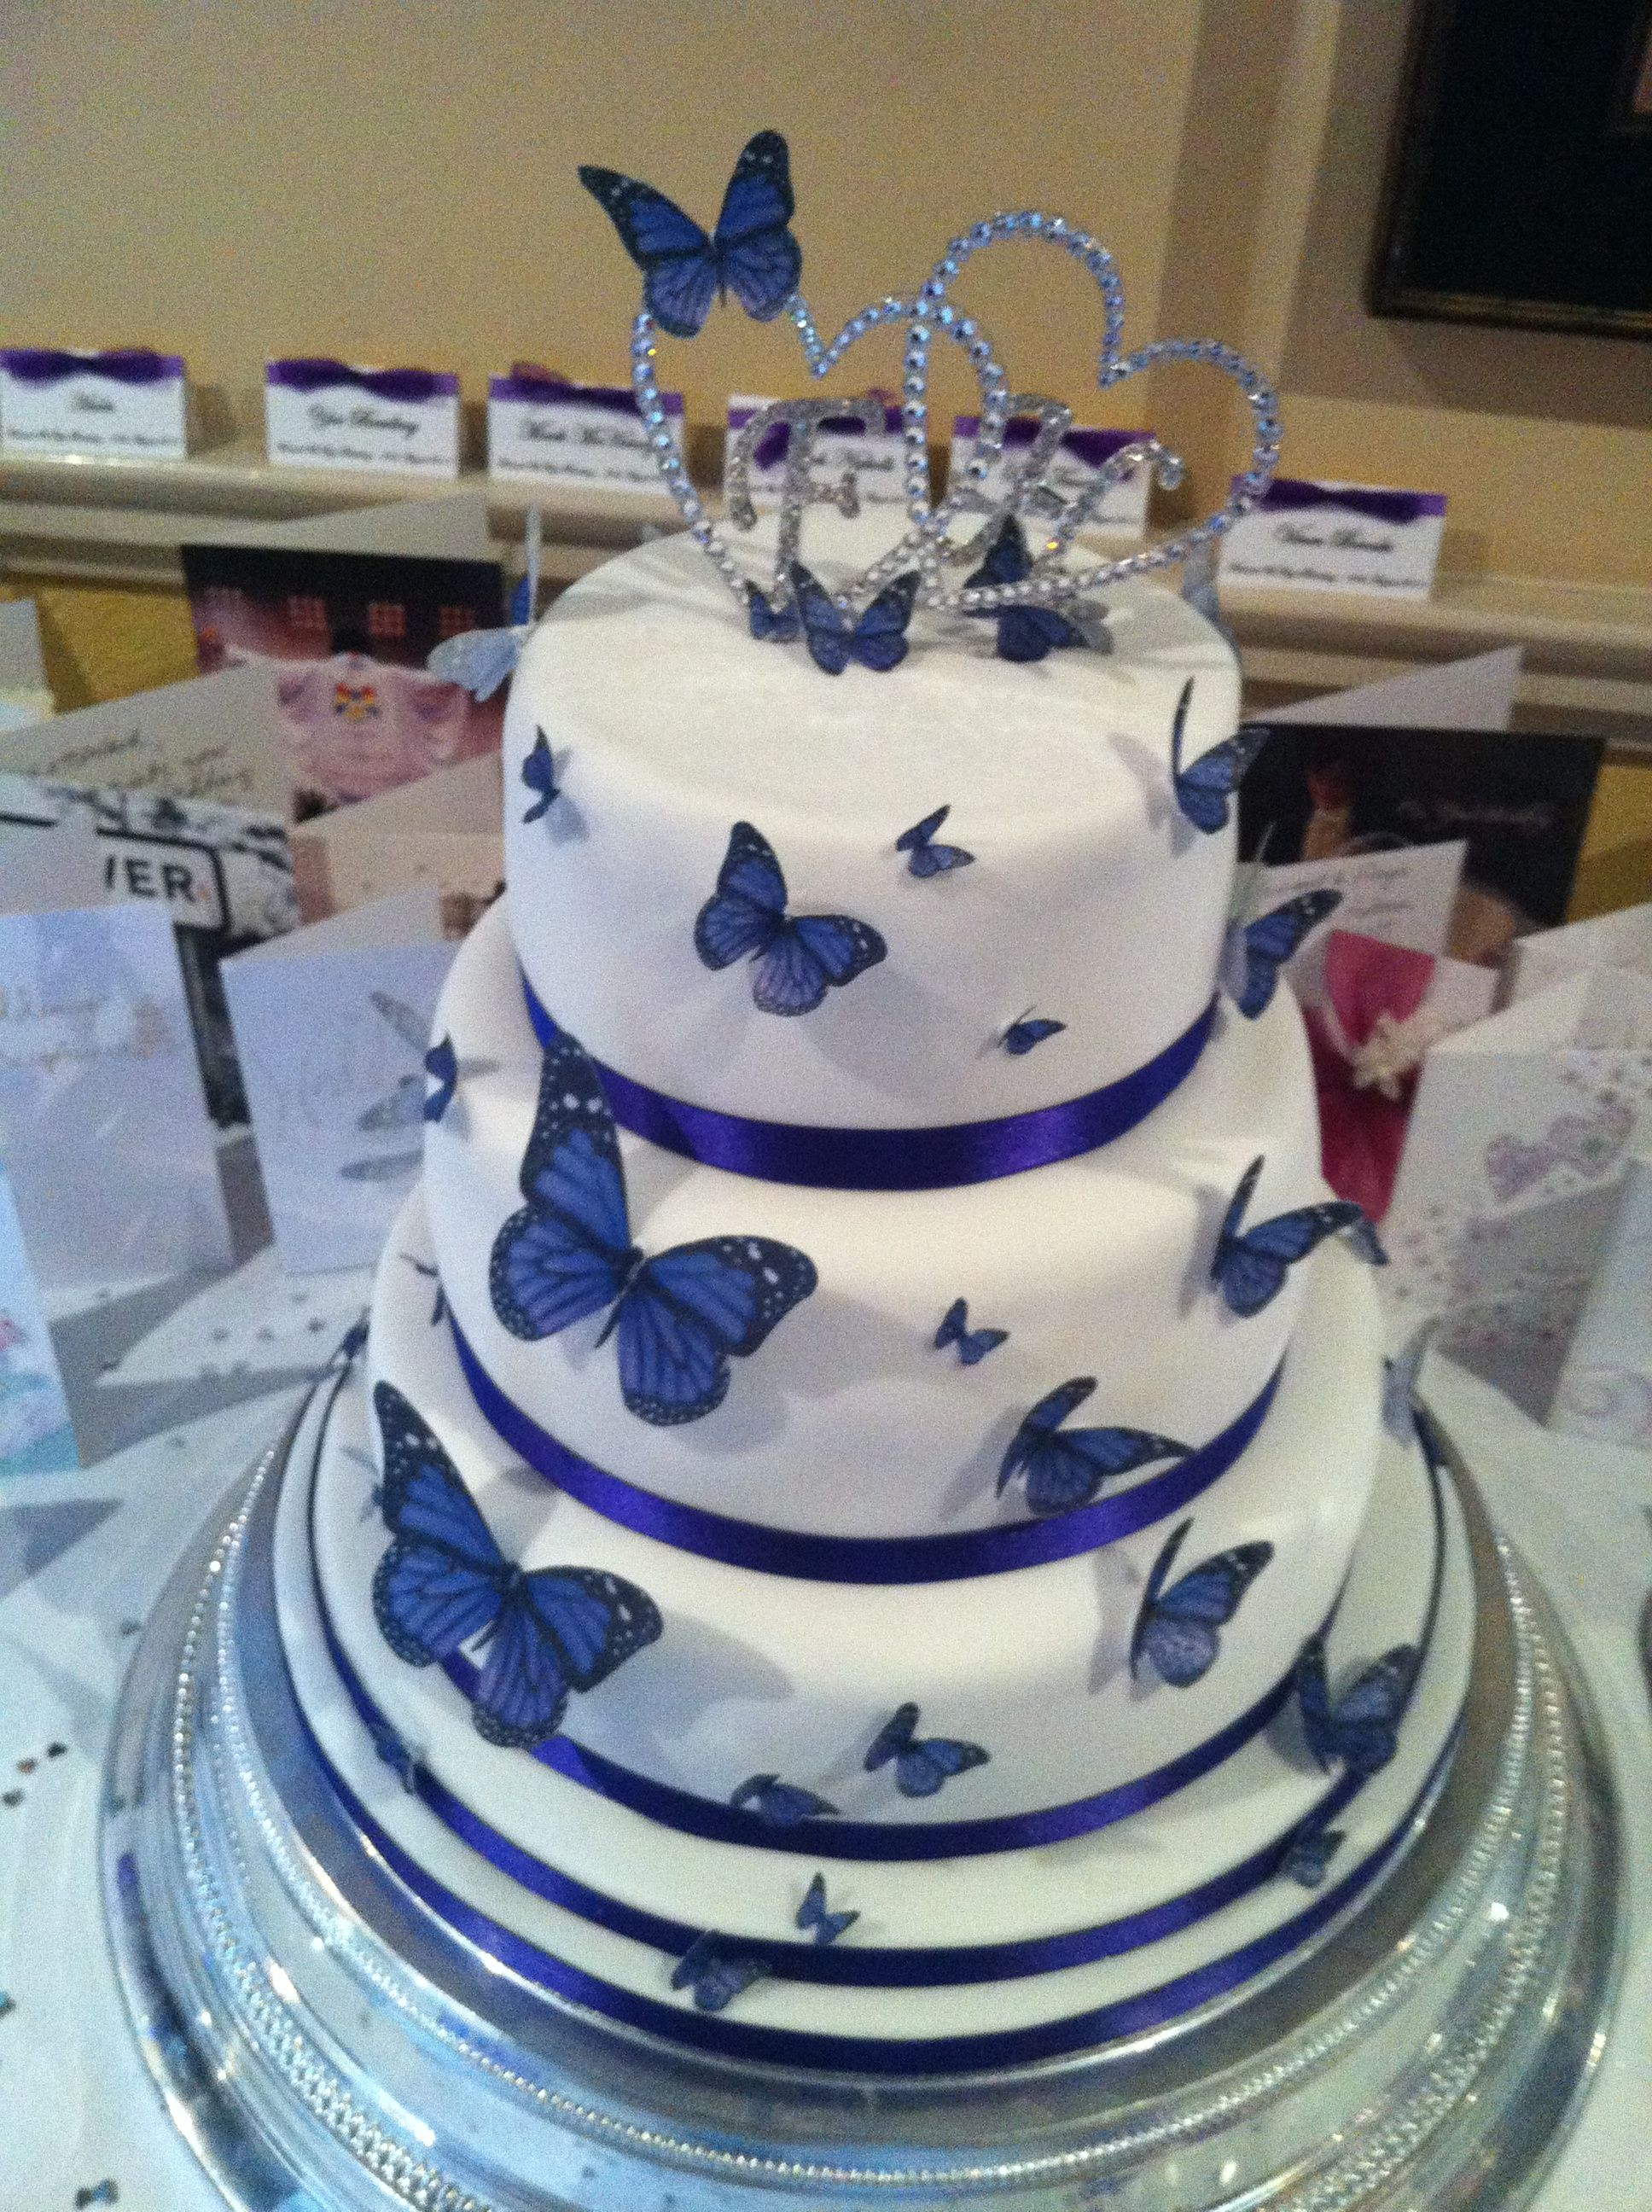 Butterfly Wedding Cake Made By Nanny Trishs Tasty Cakes